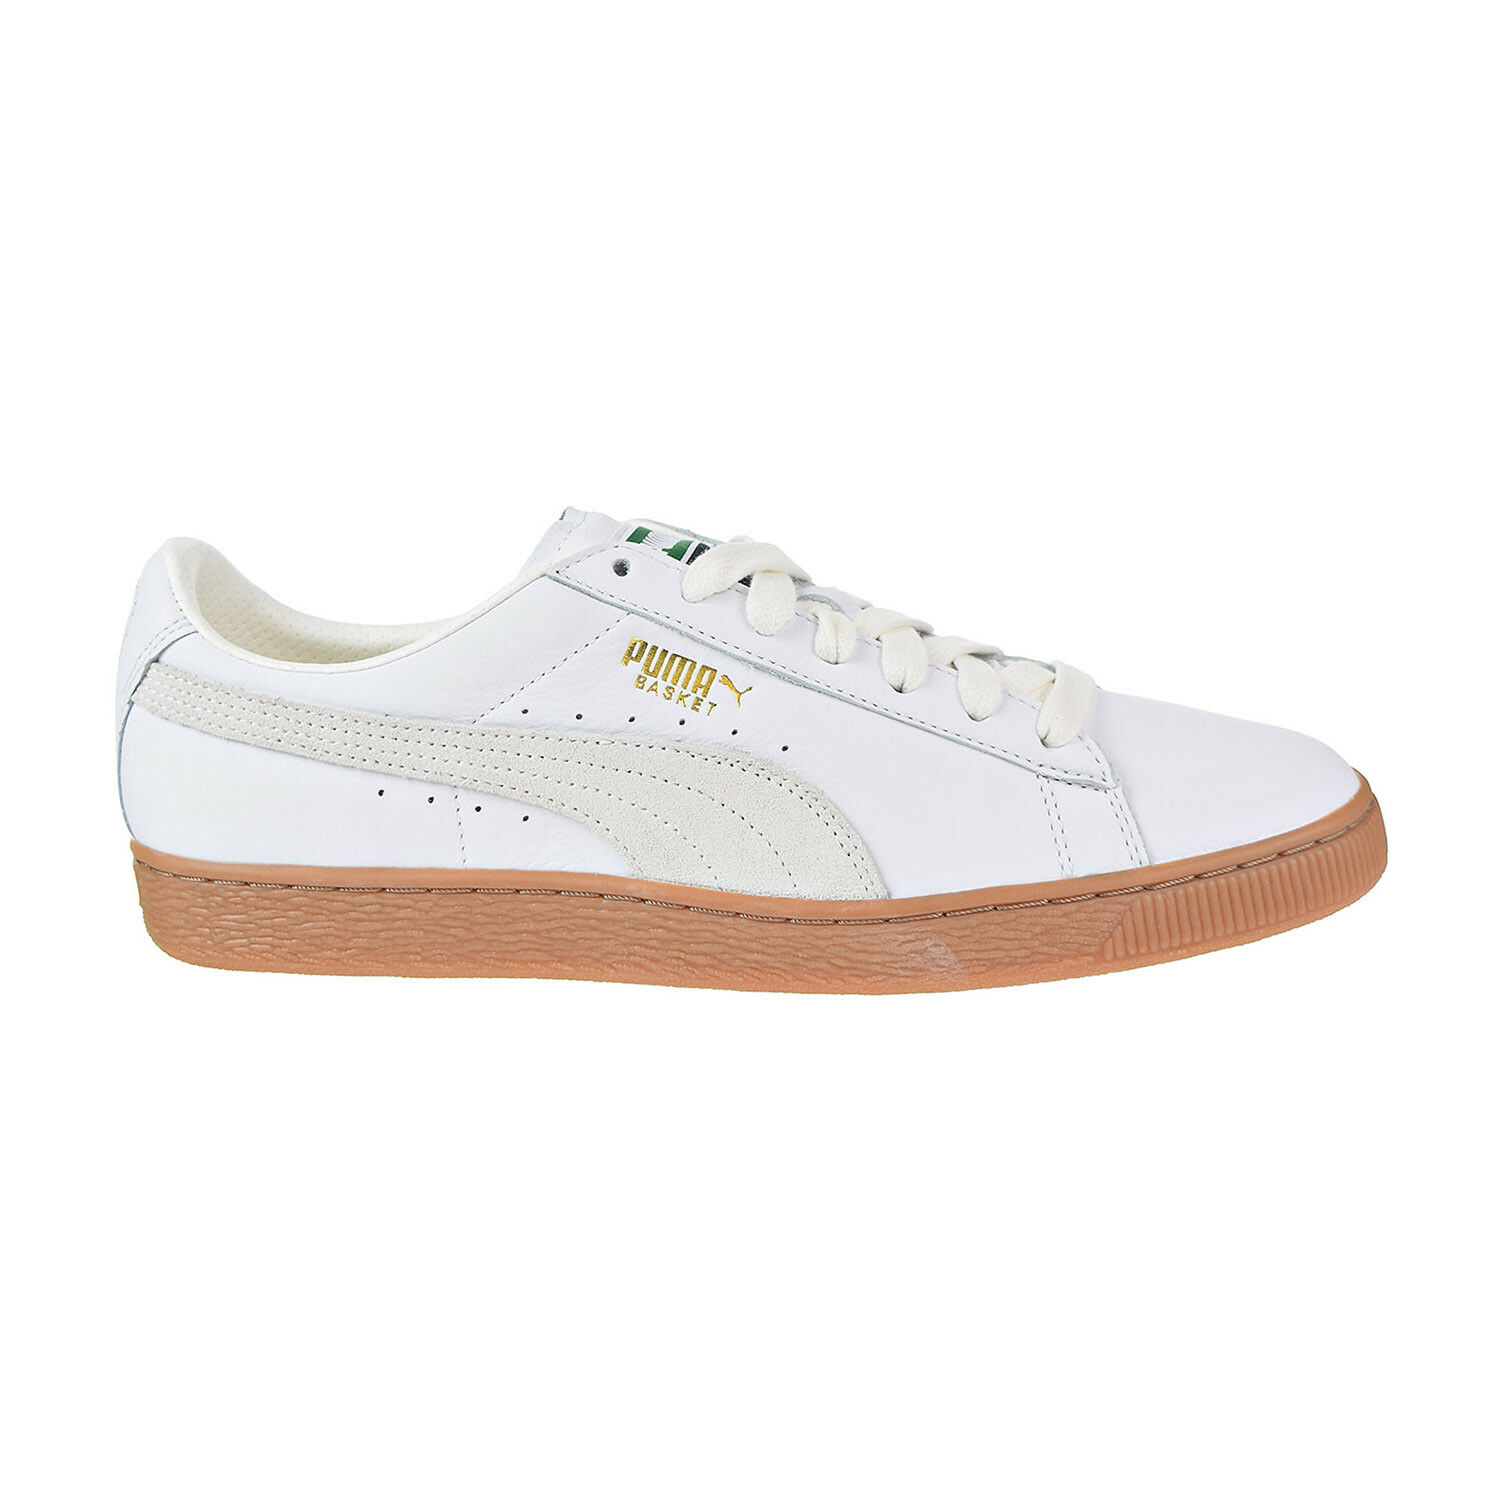 Classic Blanc 01 Chaussures Gum Deluxe Homme Puma 365366 Basket q6Cwwp